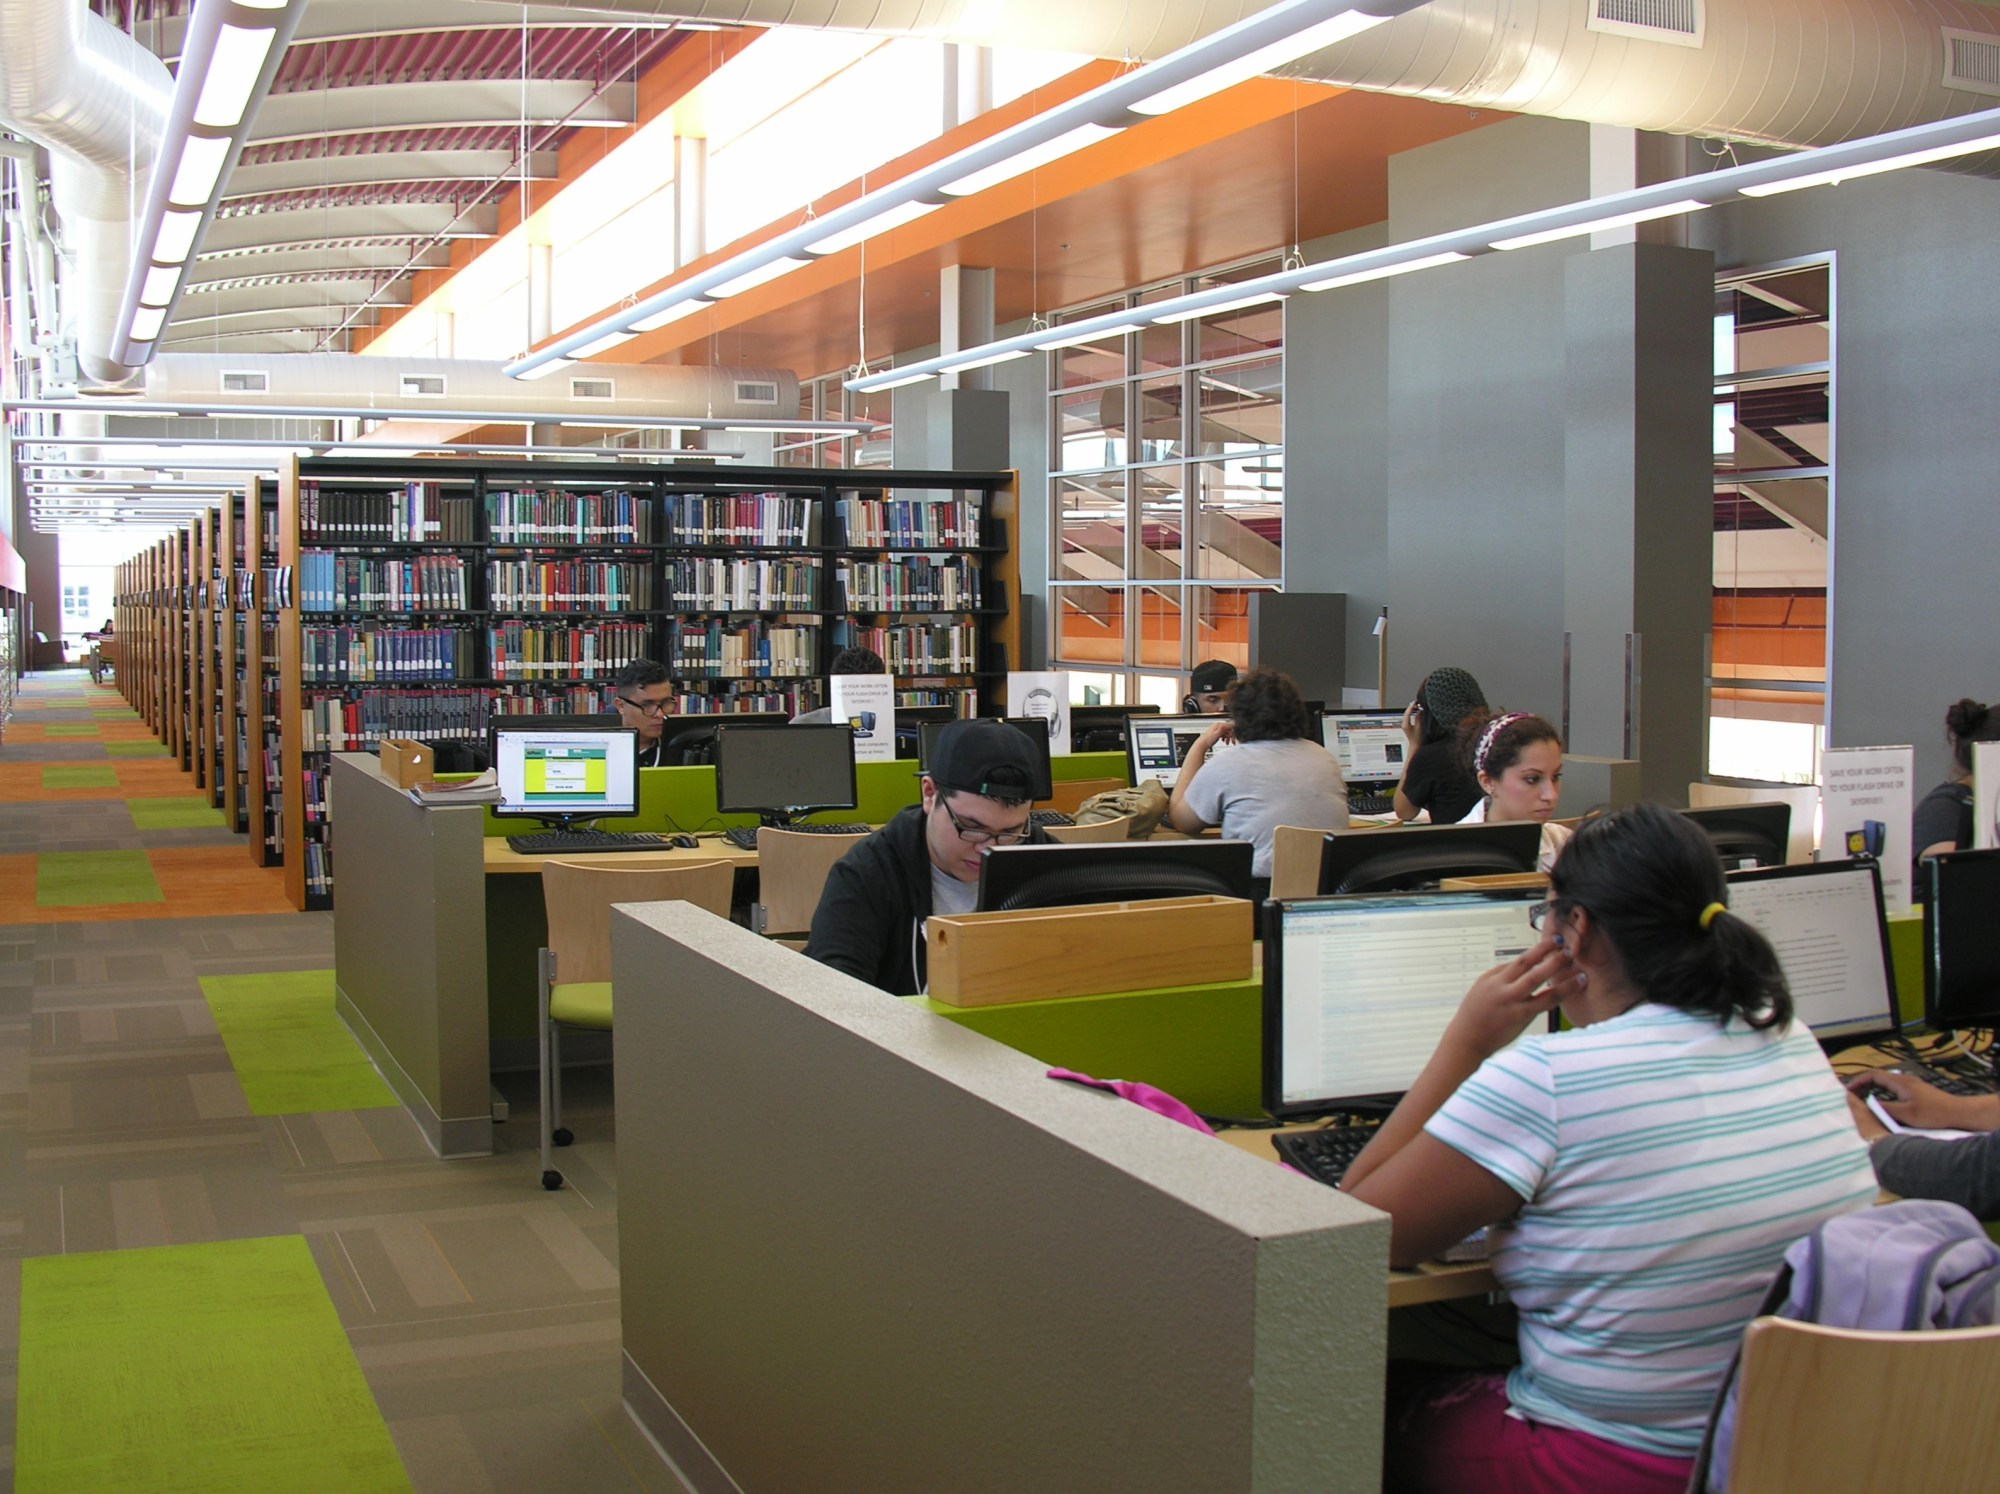 Students work on assignments in the renovated Ozuna Library and Learning Center.